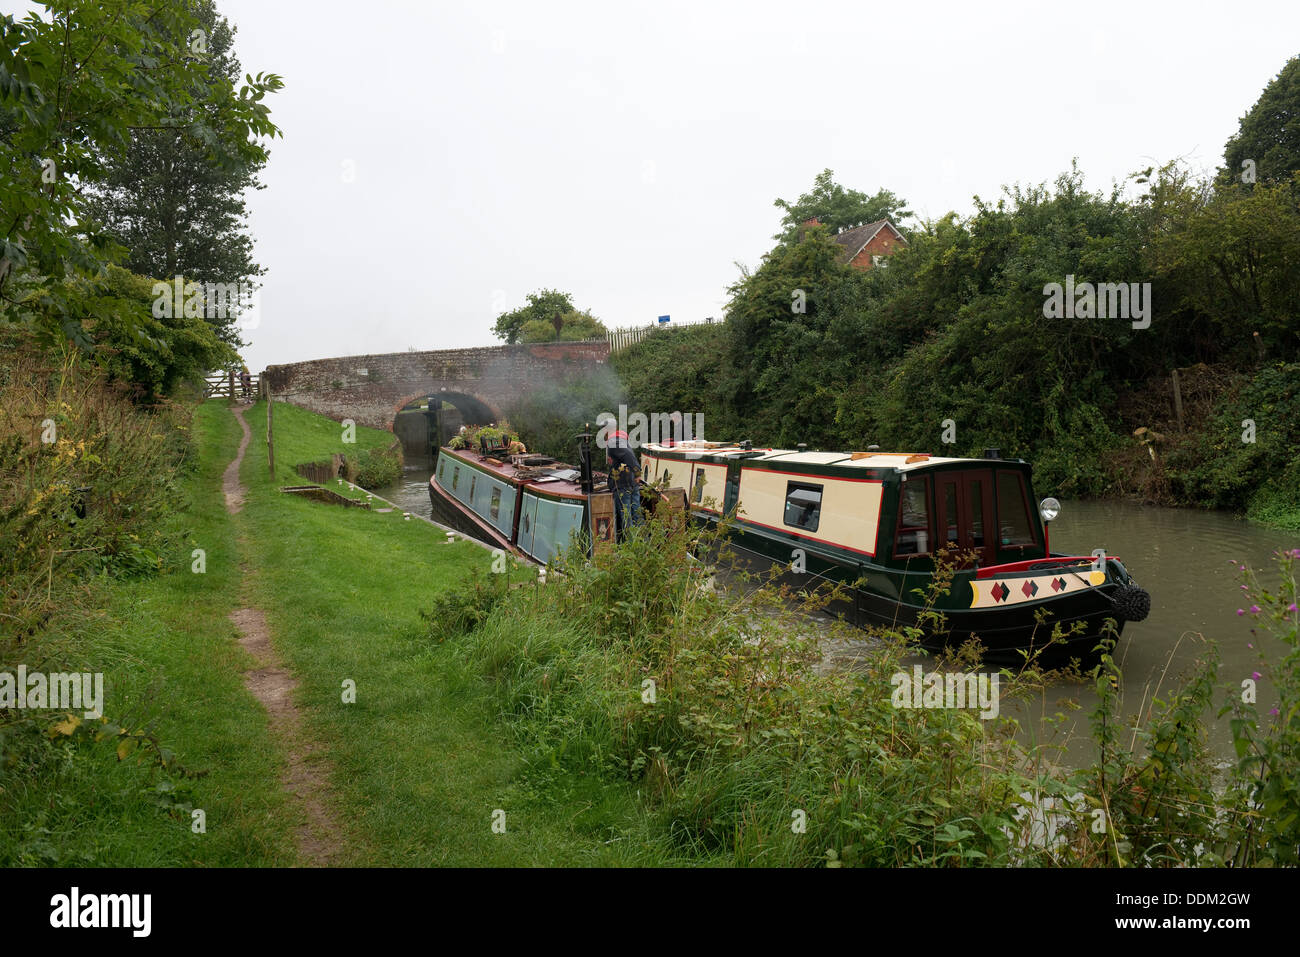 Narrow Boats on the Kennet and Avon Canal at Crofton, Wiltshire -1 - Stock Image